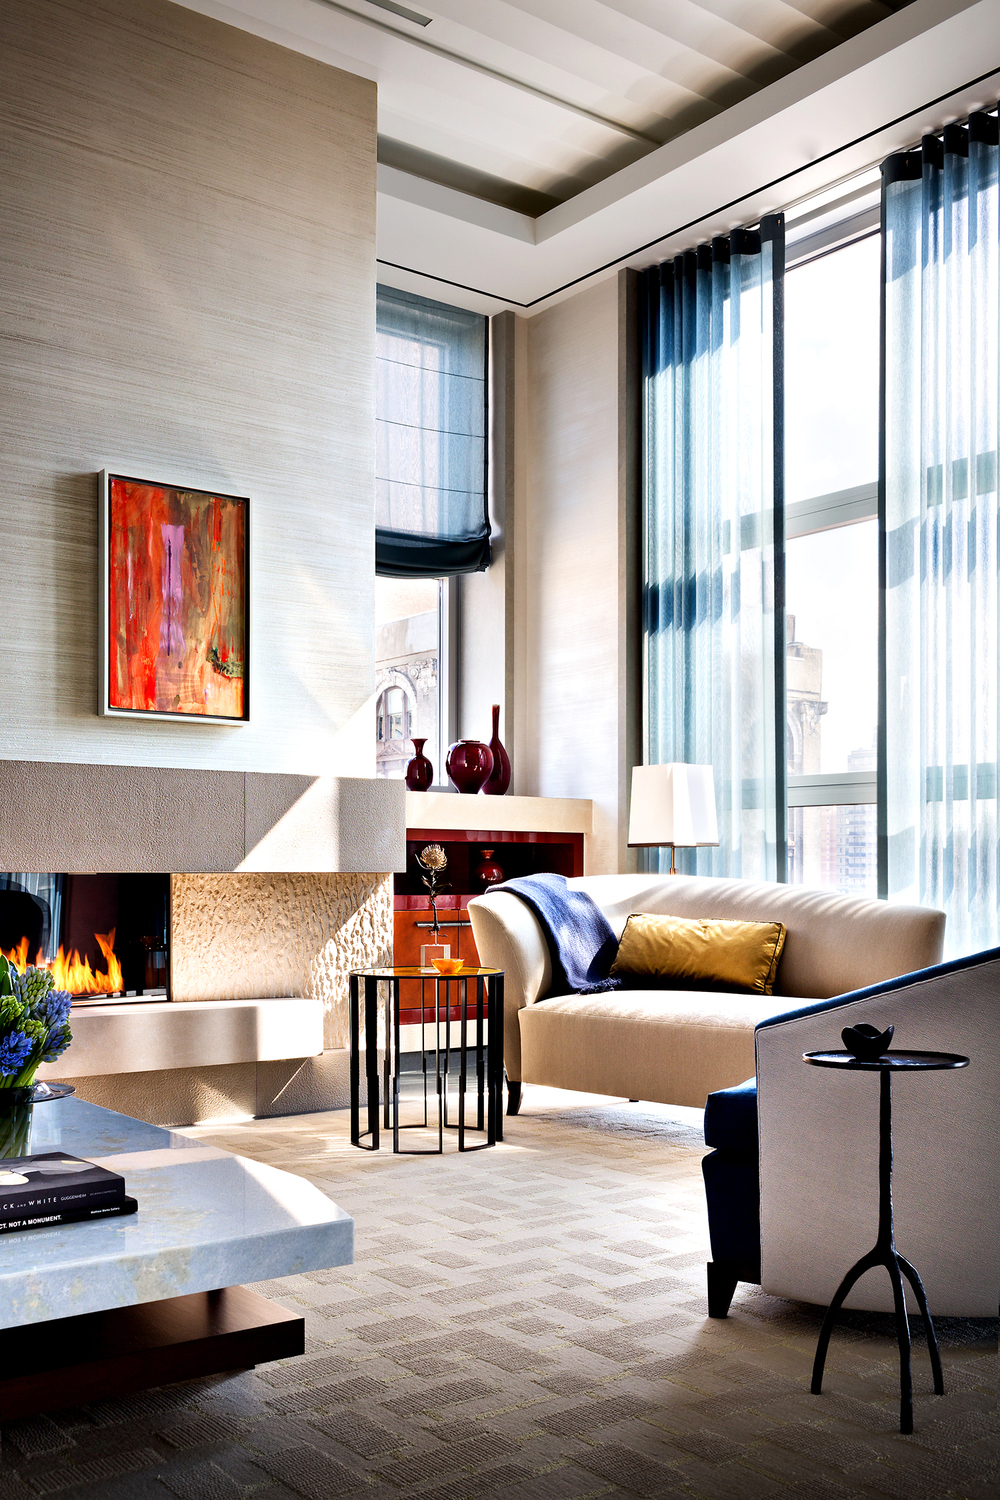 Contemporary High-rise: Fabricate Beautiful Sheer Curtains and Roman Shades by Contract Workroom